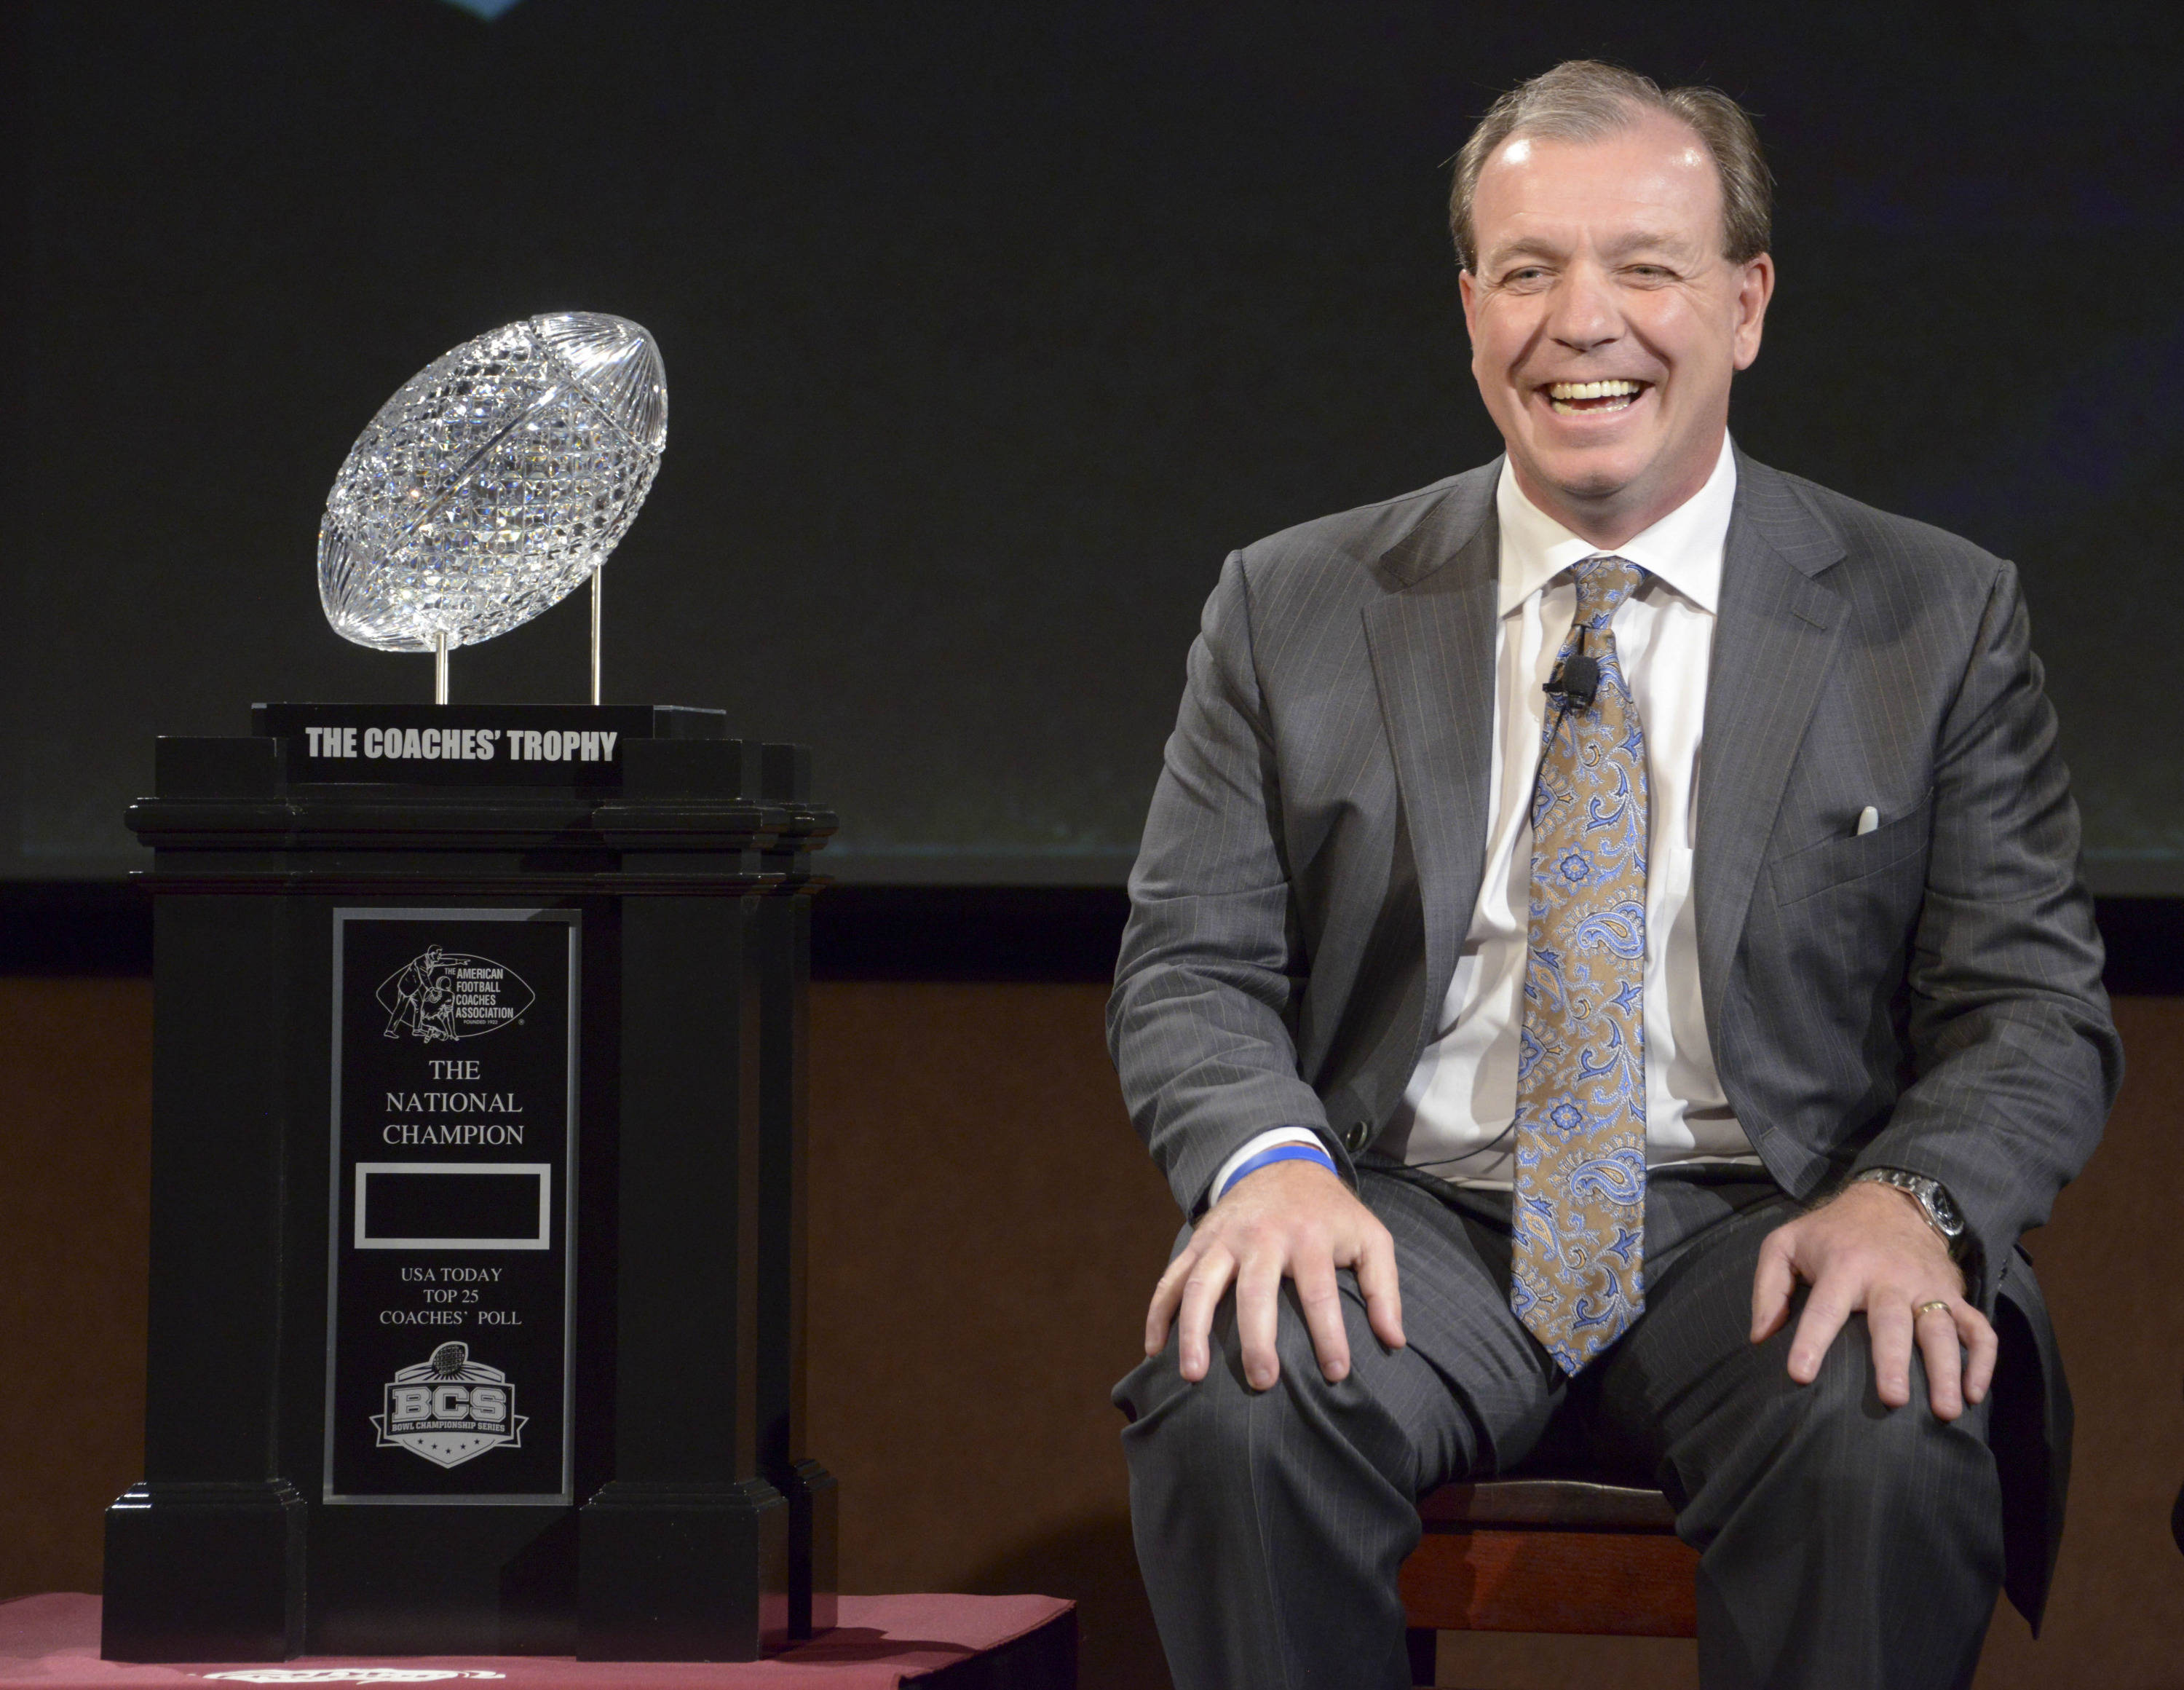 Florida State Seminoles coach Jimbo Fisher with the Coaches Trophy at a press conference for the 2014 BCS National Championship at ESPN Zone Downtown Disney. Mandatory Credit: Kirby Lee-USA TODAY Sports